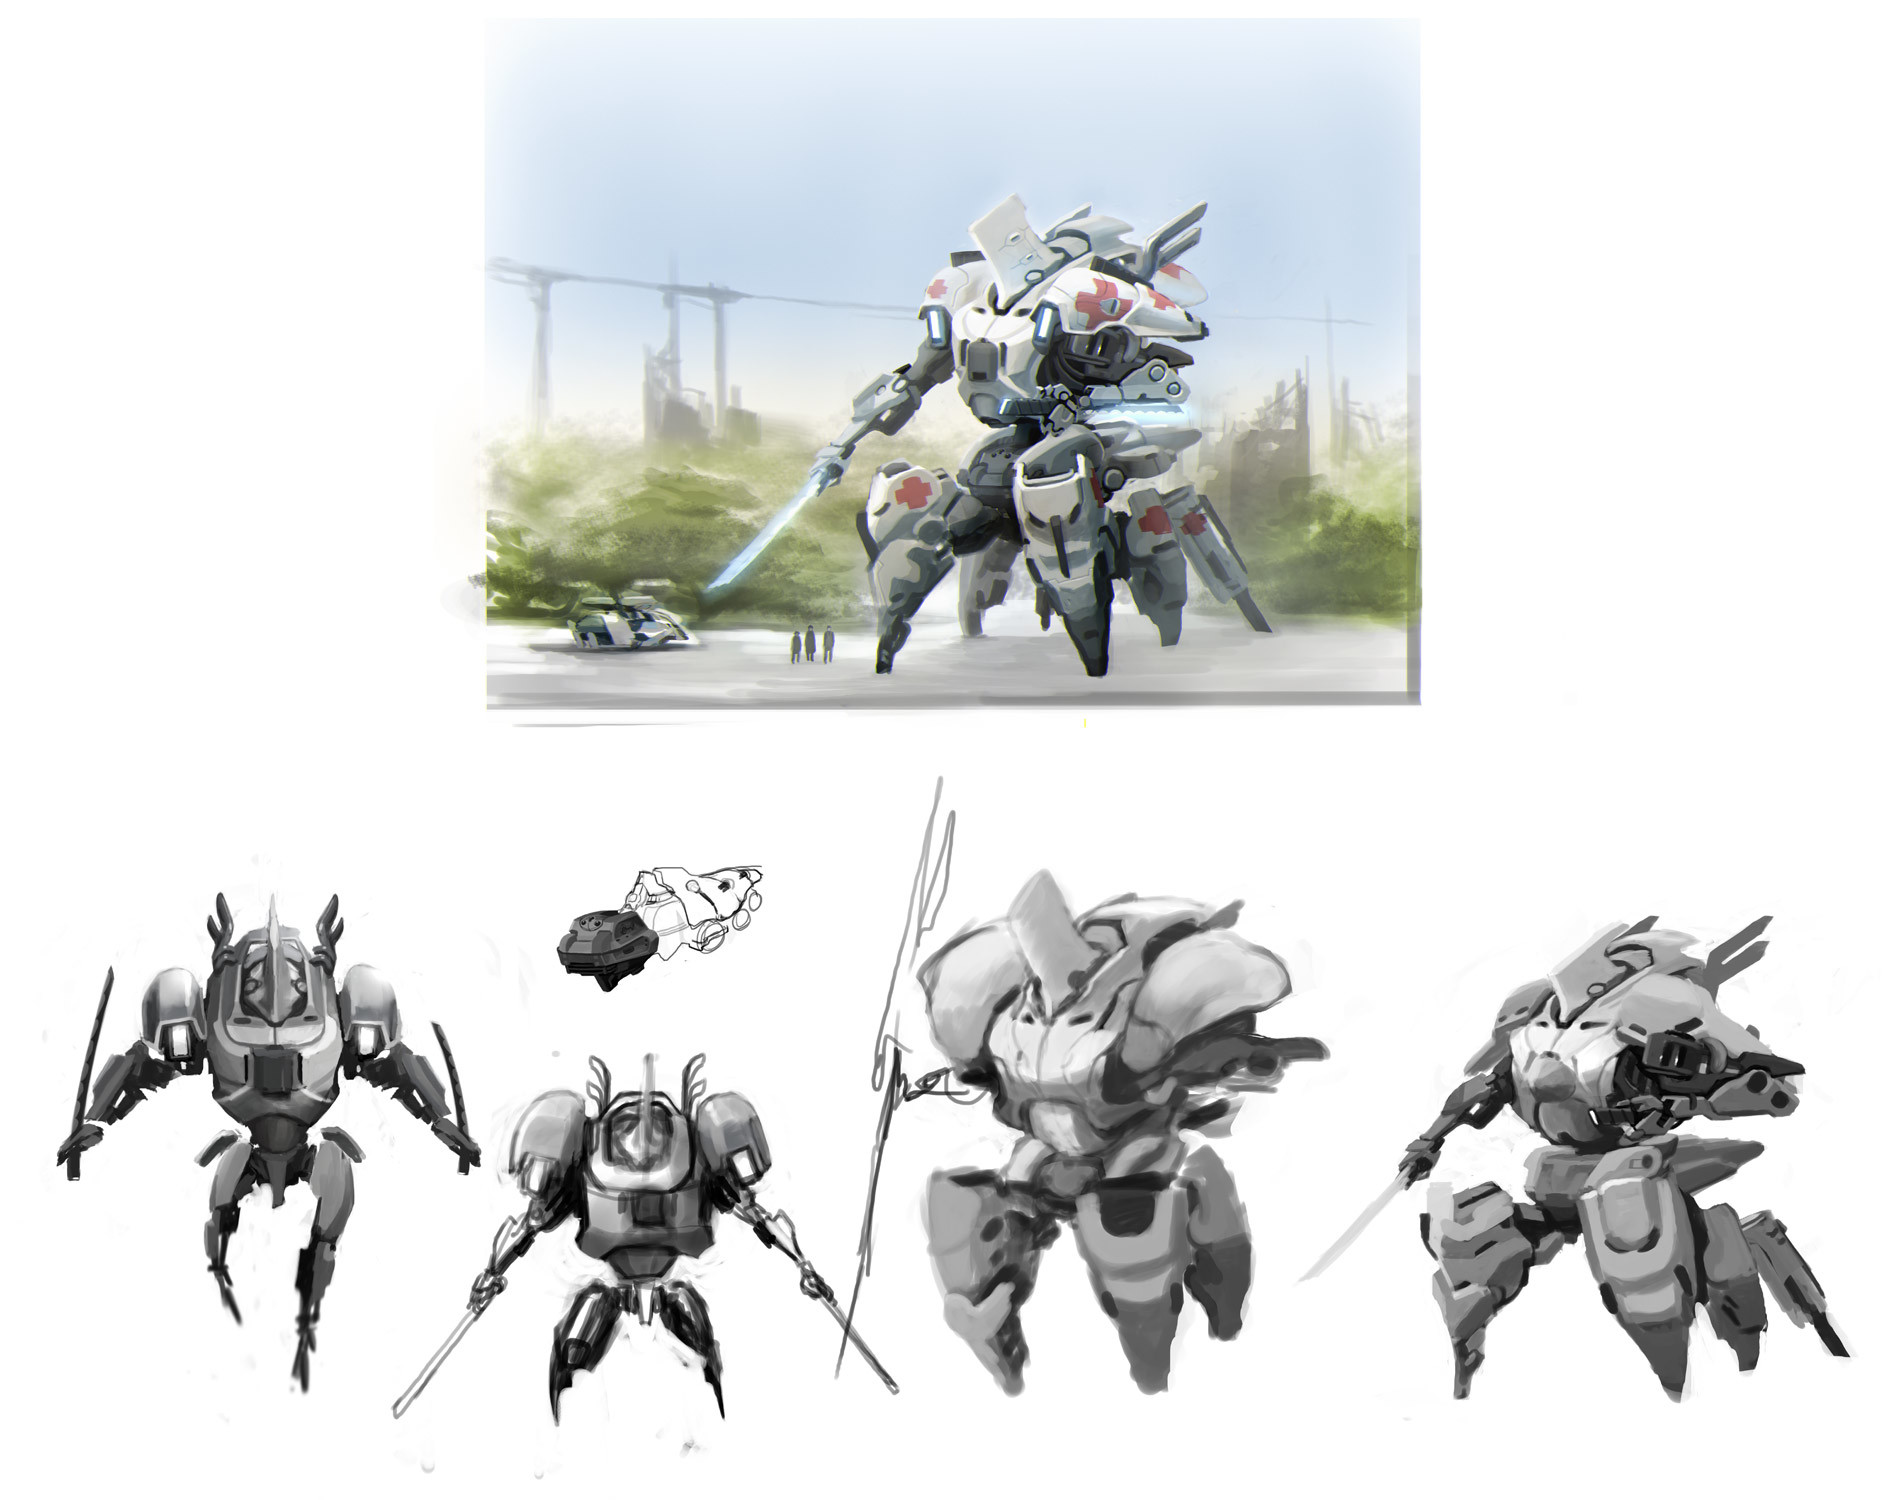 T d chiu tems tech sketches